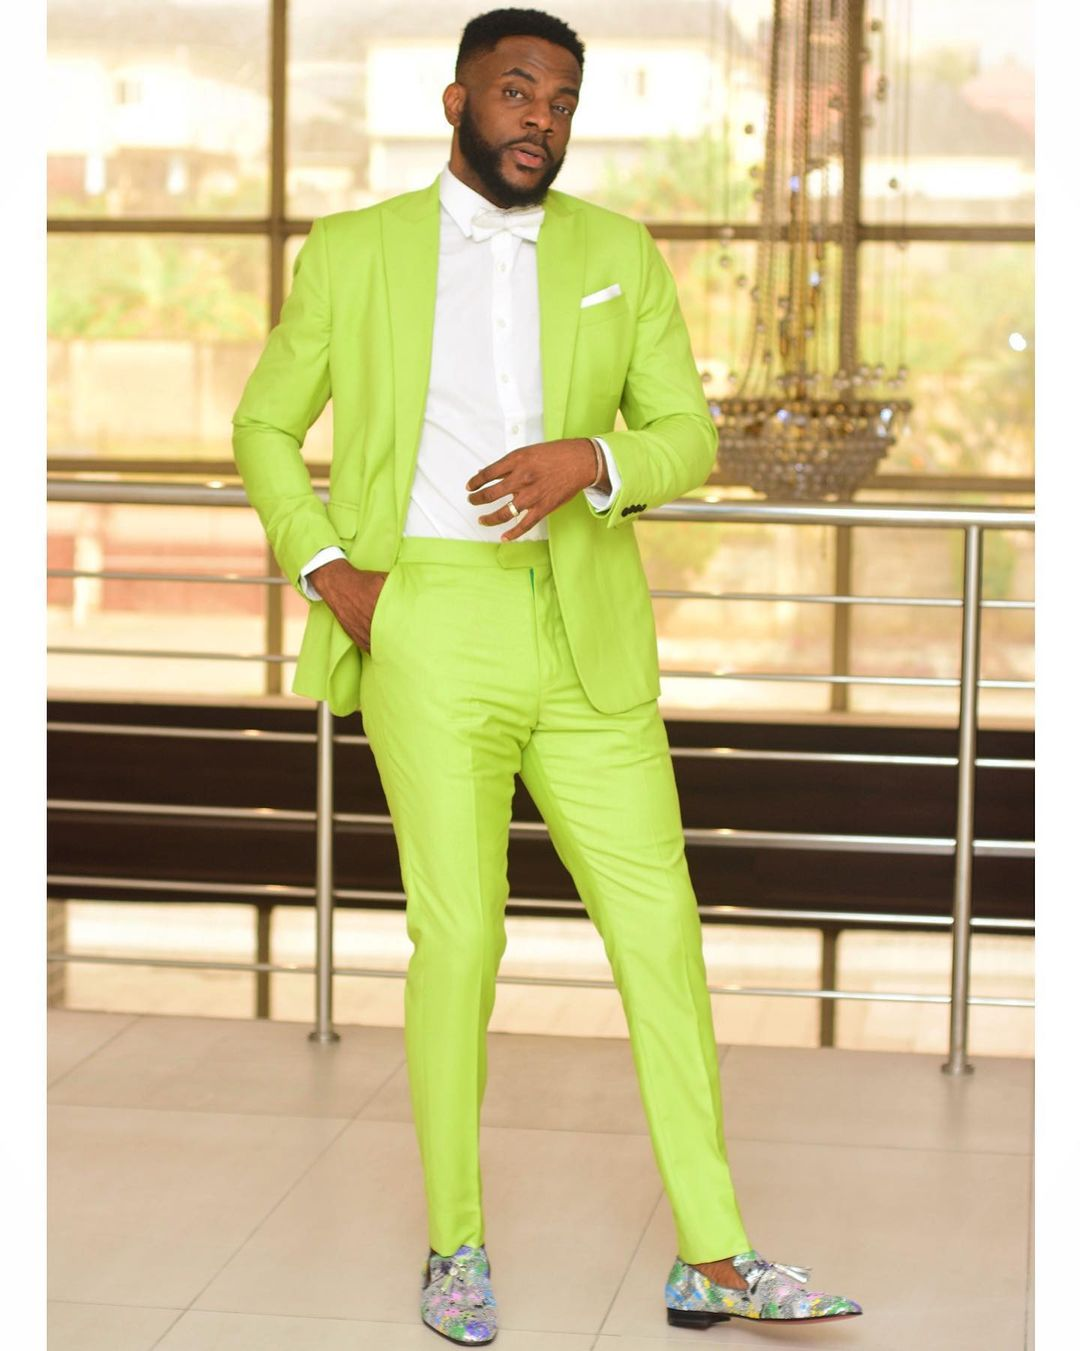 male-celebrities-africa-decadent-fashion-style-rave